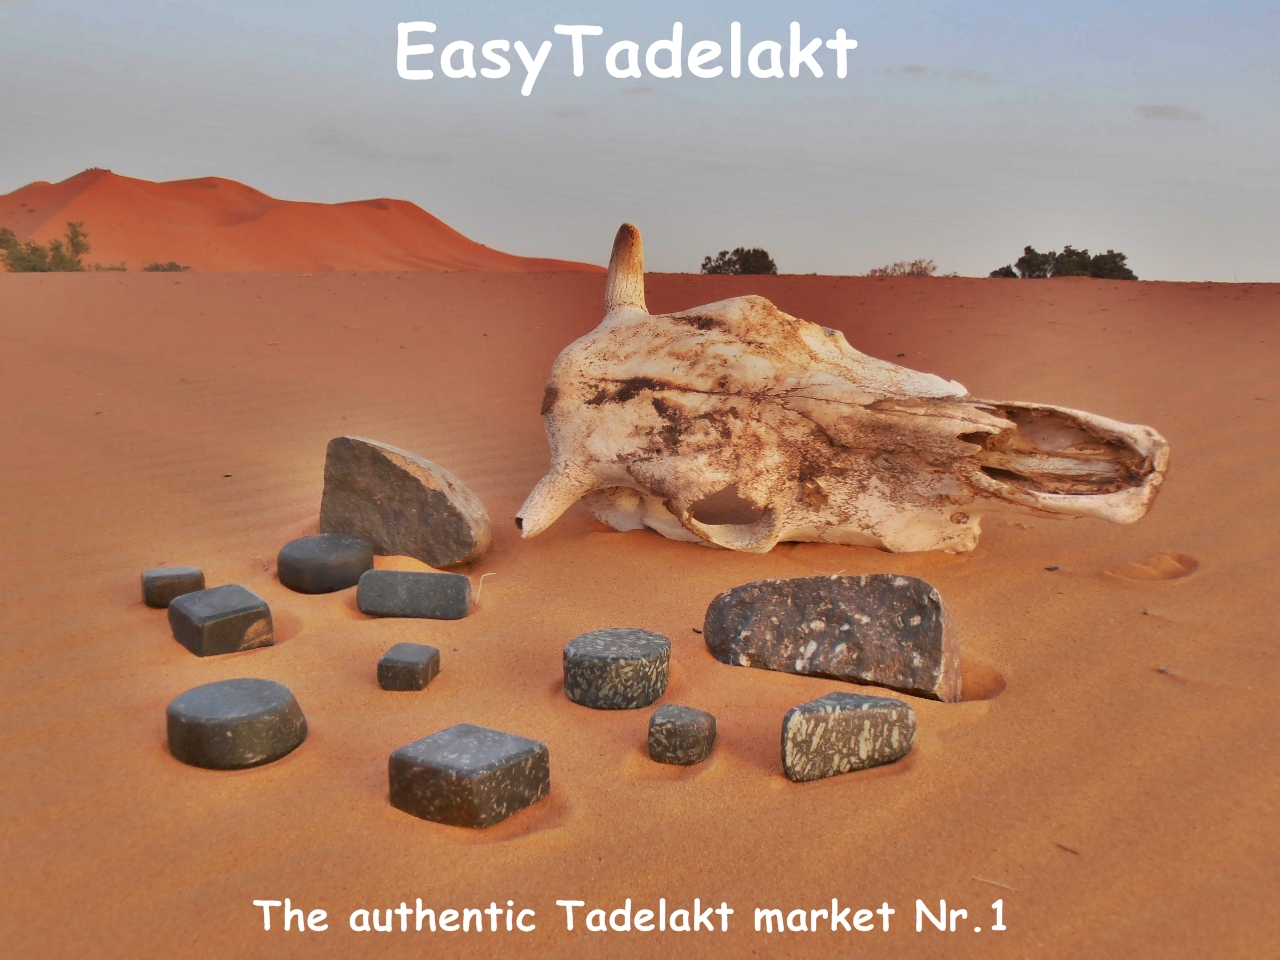 The authentic Tadelakt market for authentic people